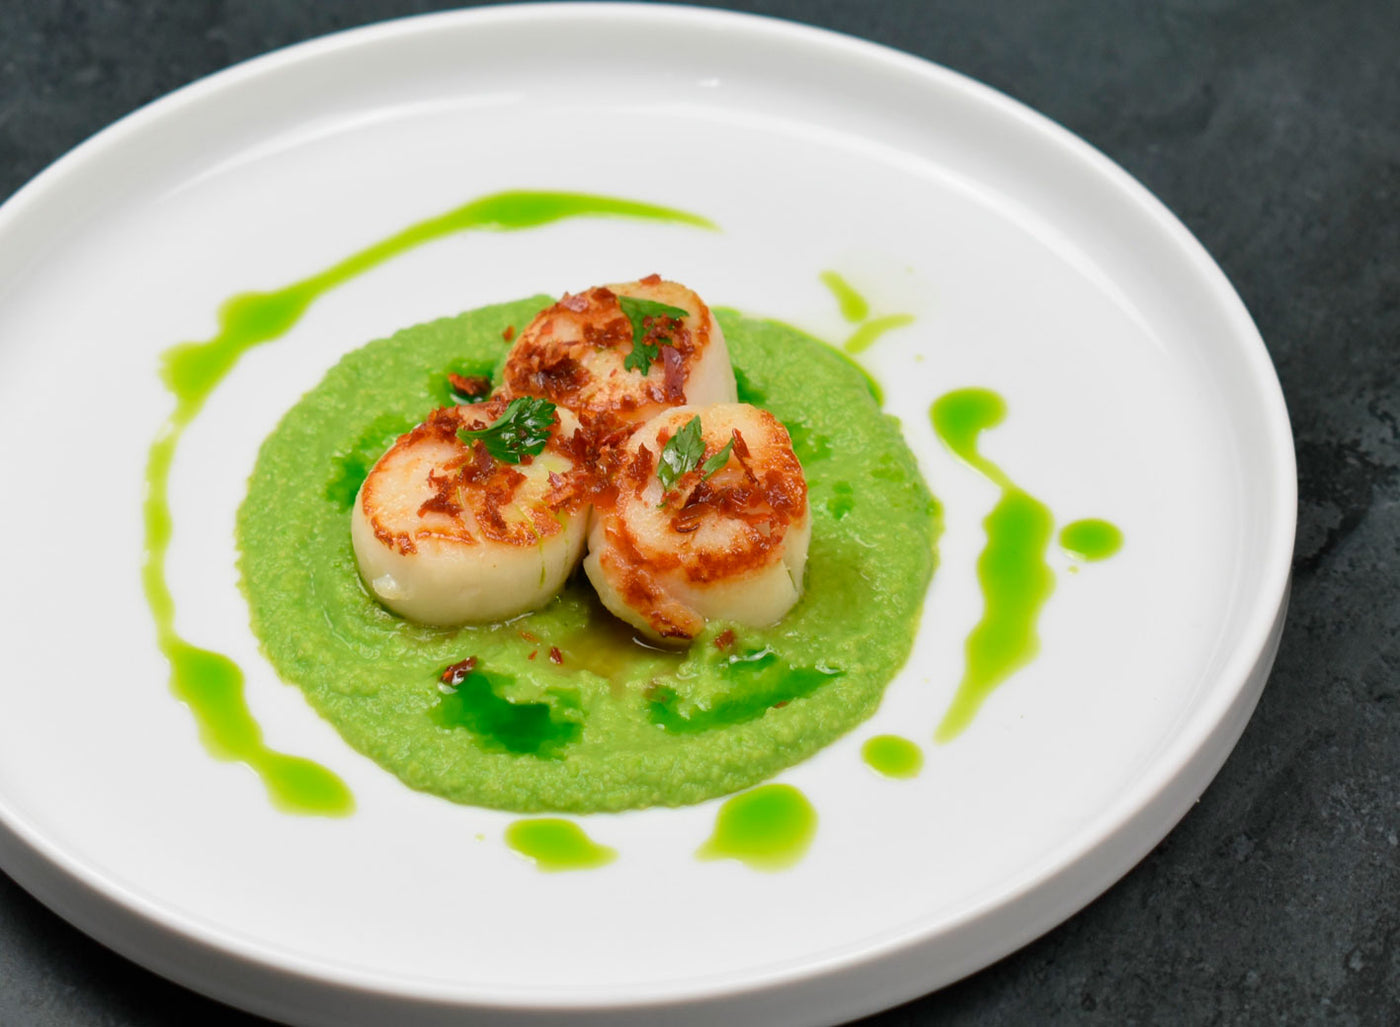 Parsley Herb Oil, Scallops, Pea Purée and Prosciutto